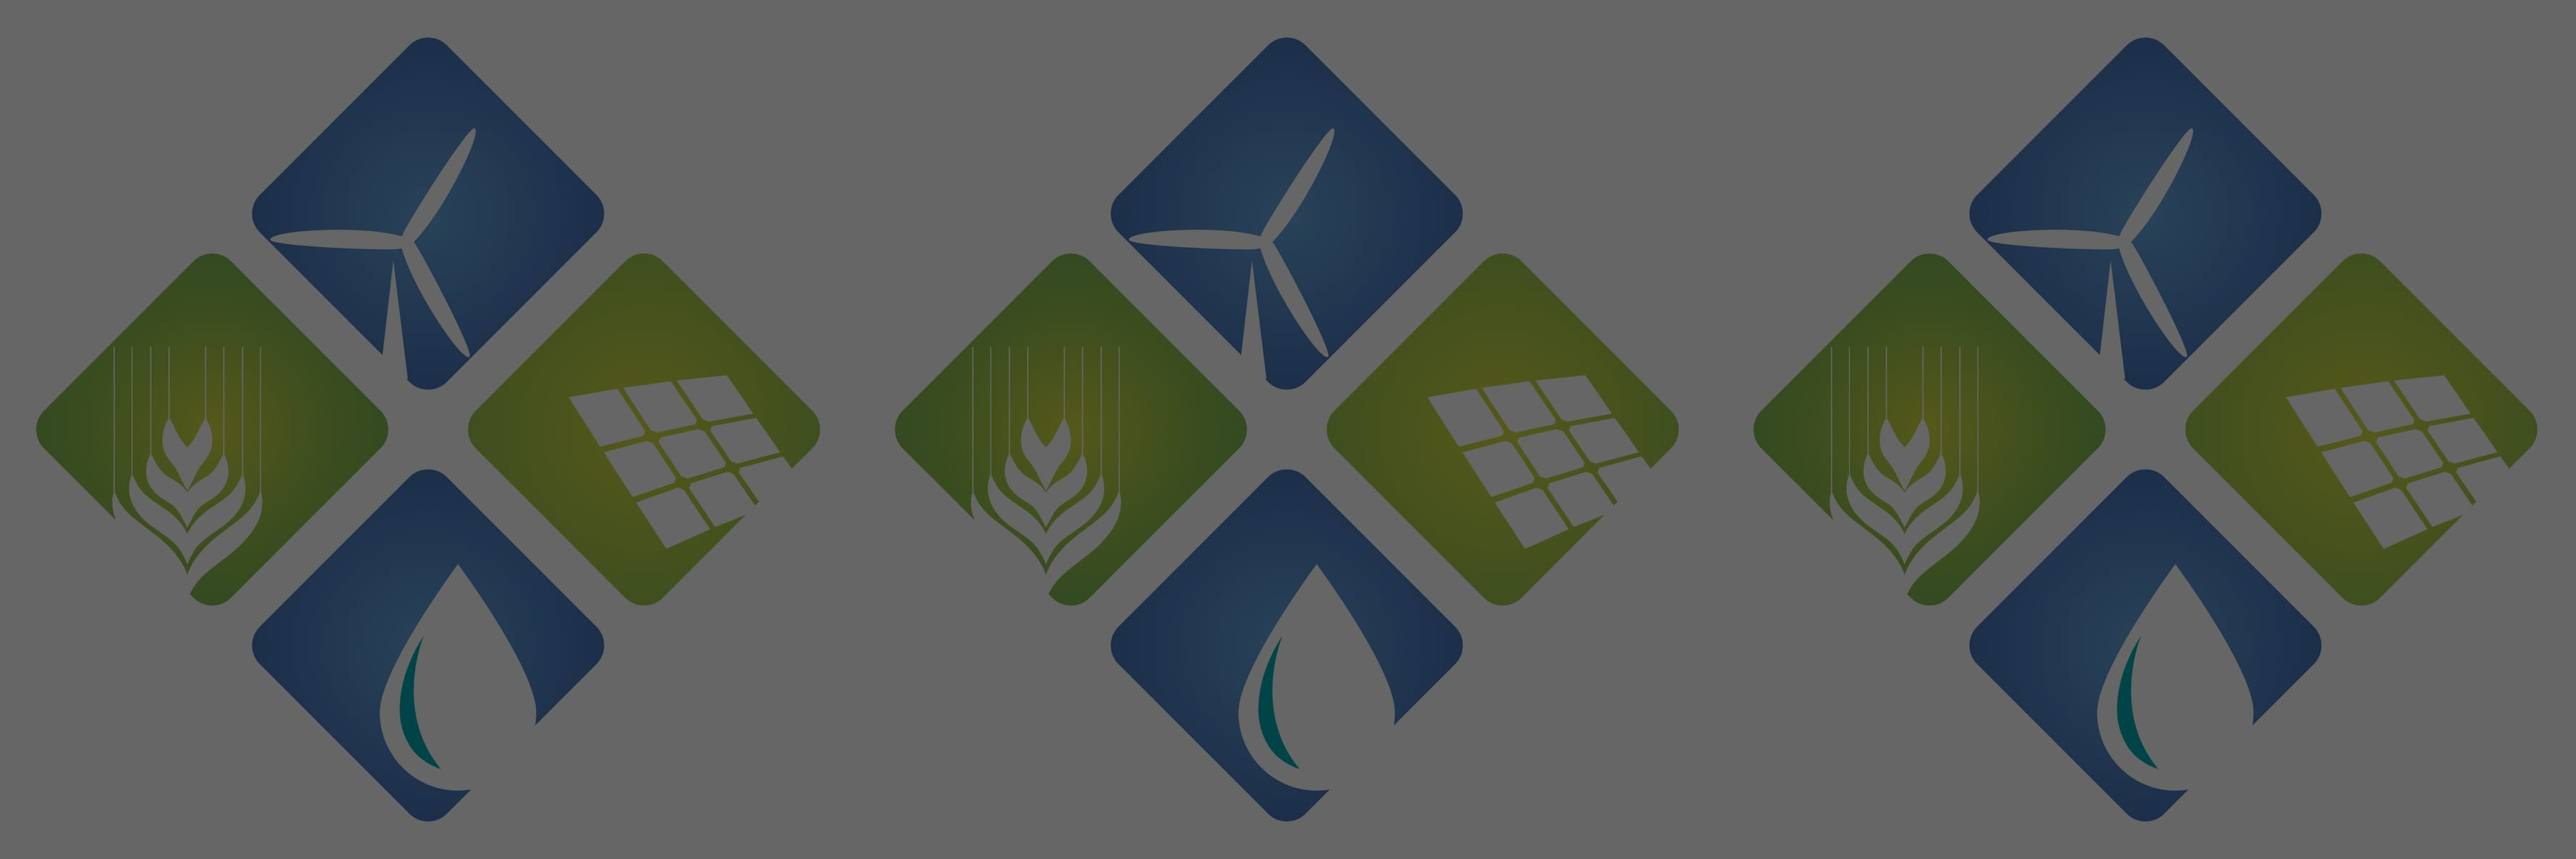 naem-webinar-2017-building-a-successful-renewable-energy-strategy-to-meet-aggressive-sustainability-goals-1800x600-min